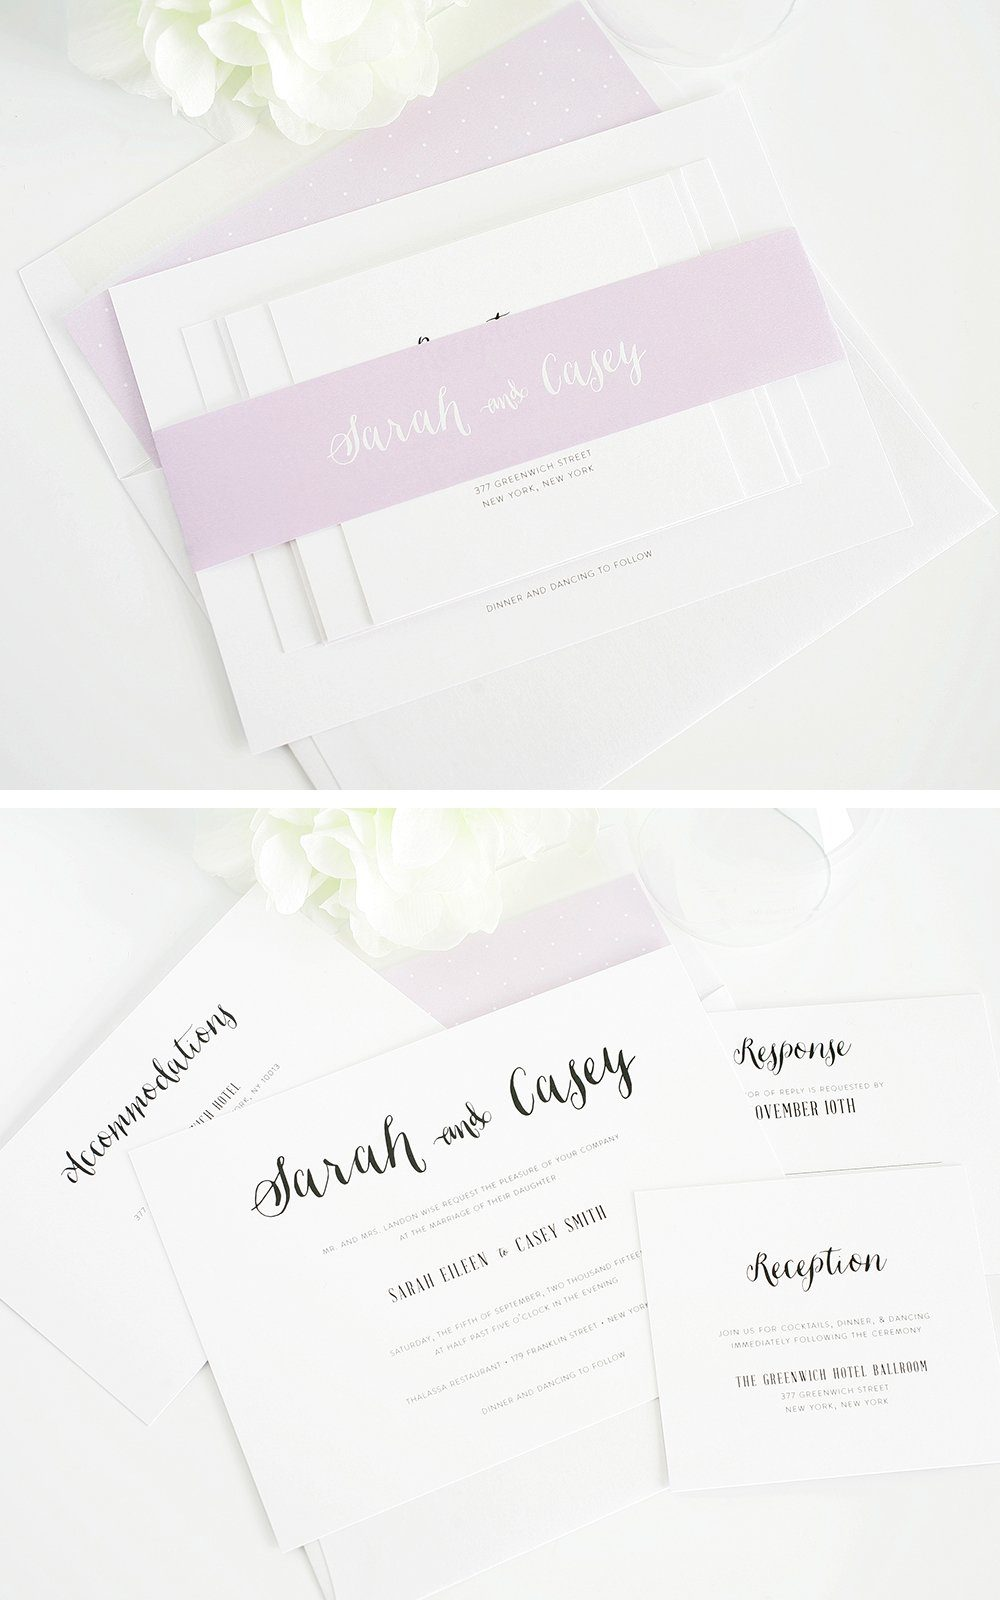 whimsical wedding invites in purple